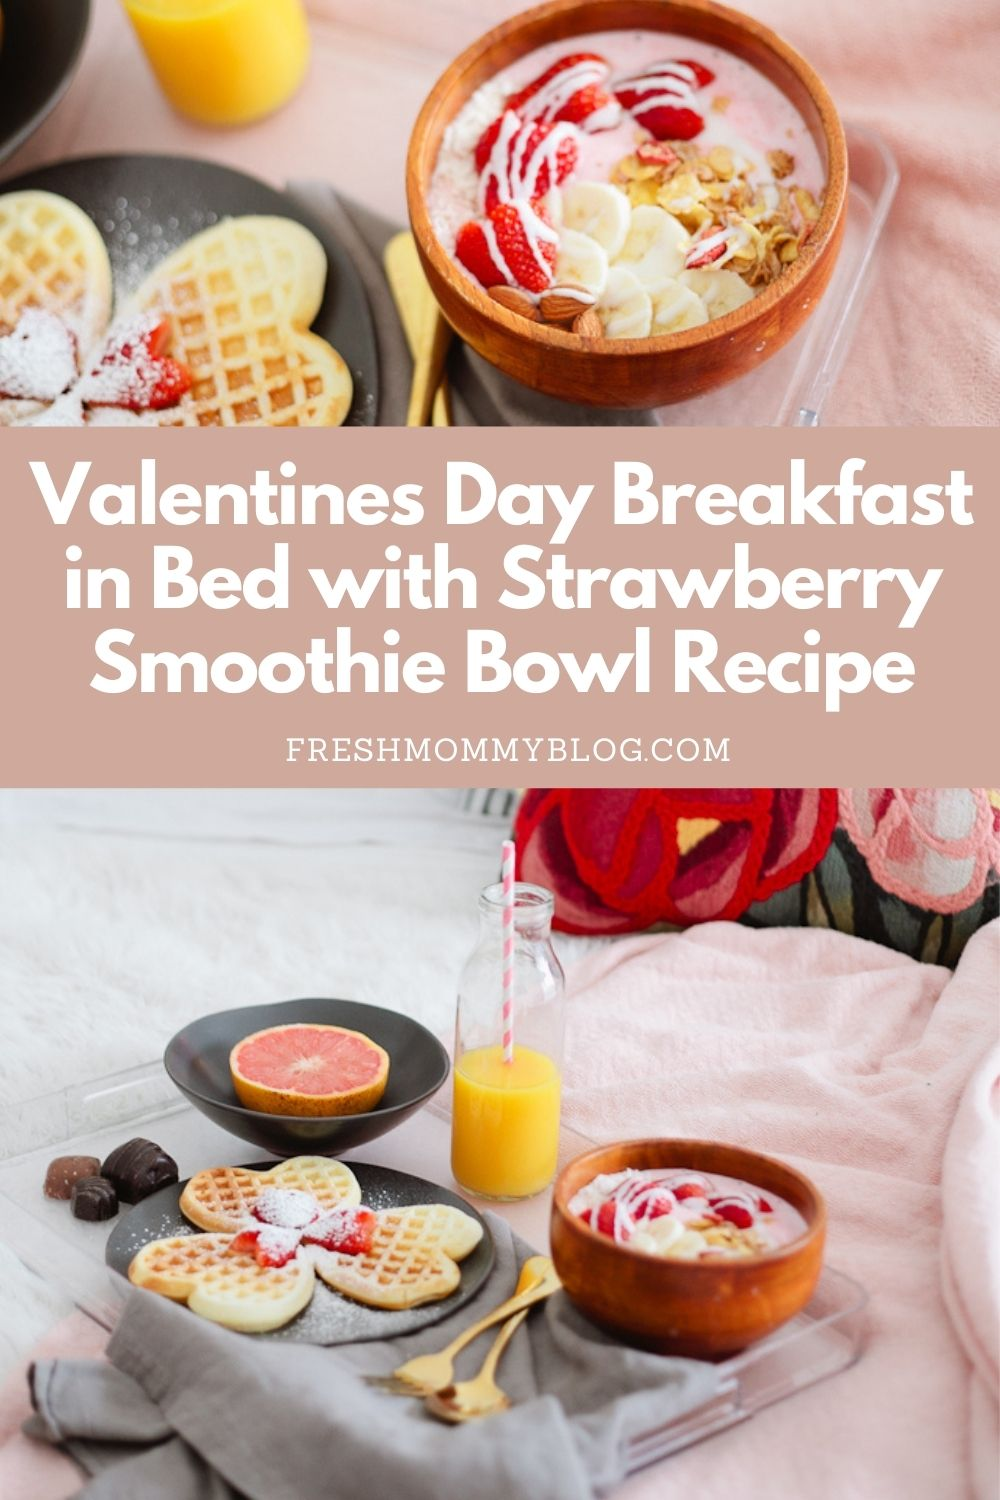 Valentines Day Breakfast in Bed with Strawberry Smoothie Bowl Recipe by popular Florida lifestyle blogger Fresh Mommy Blog